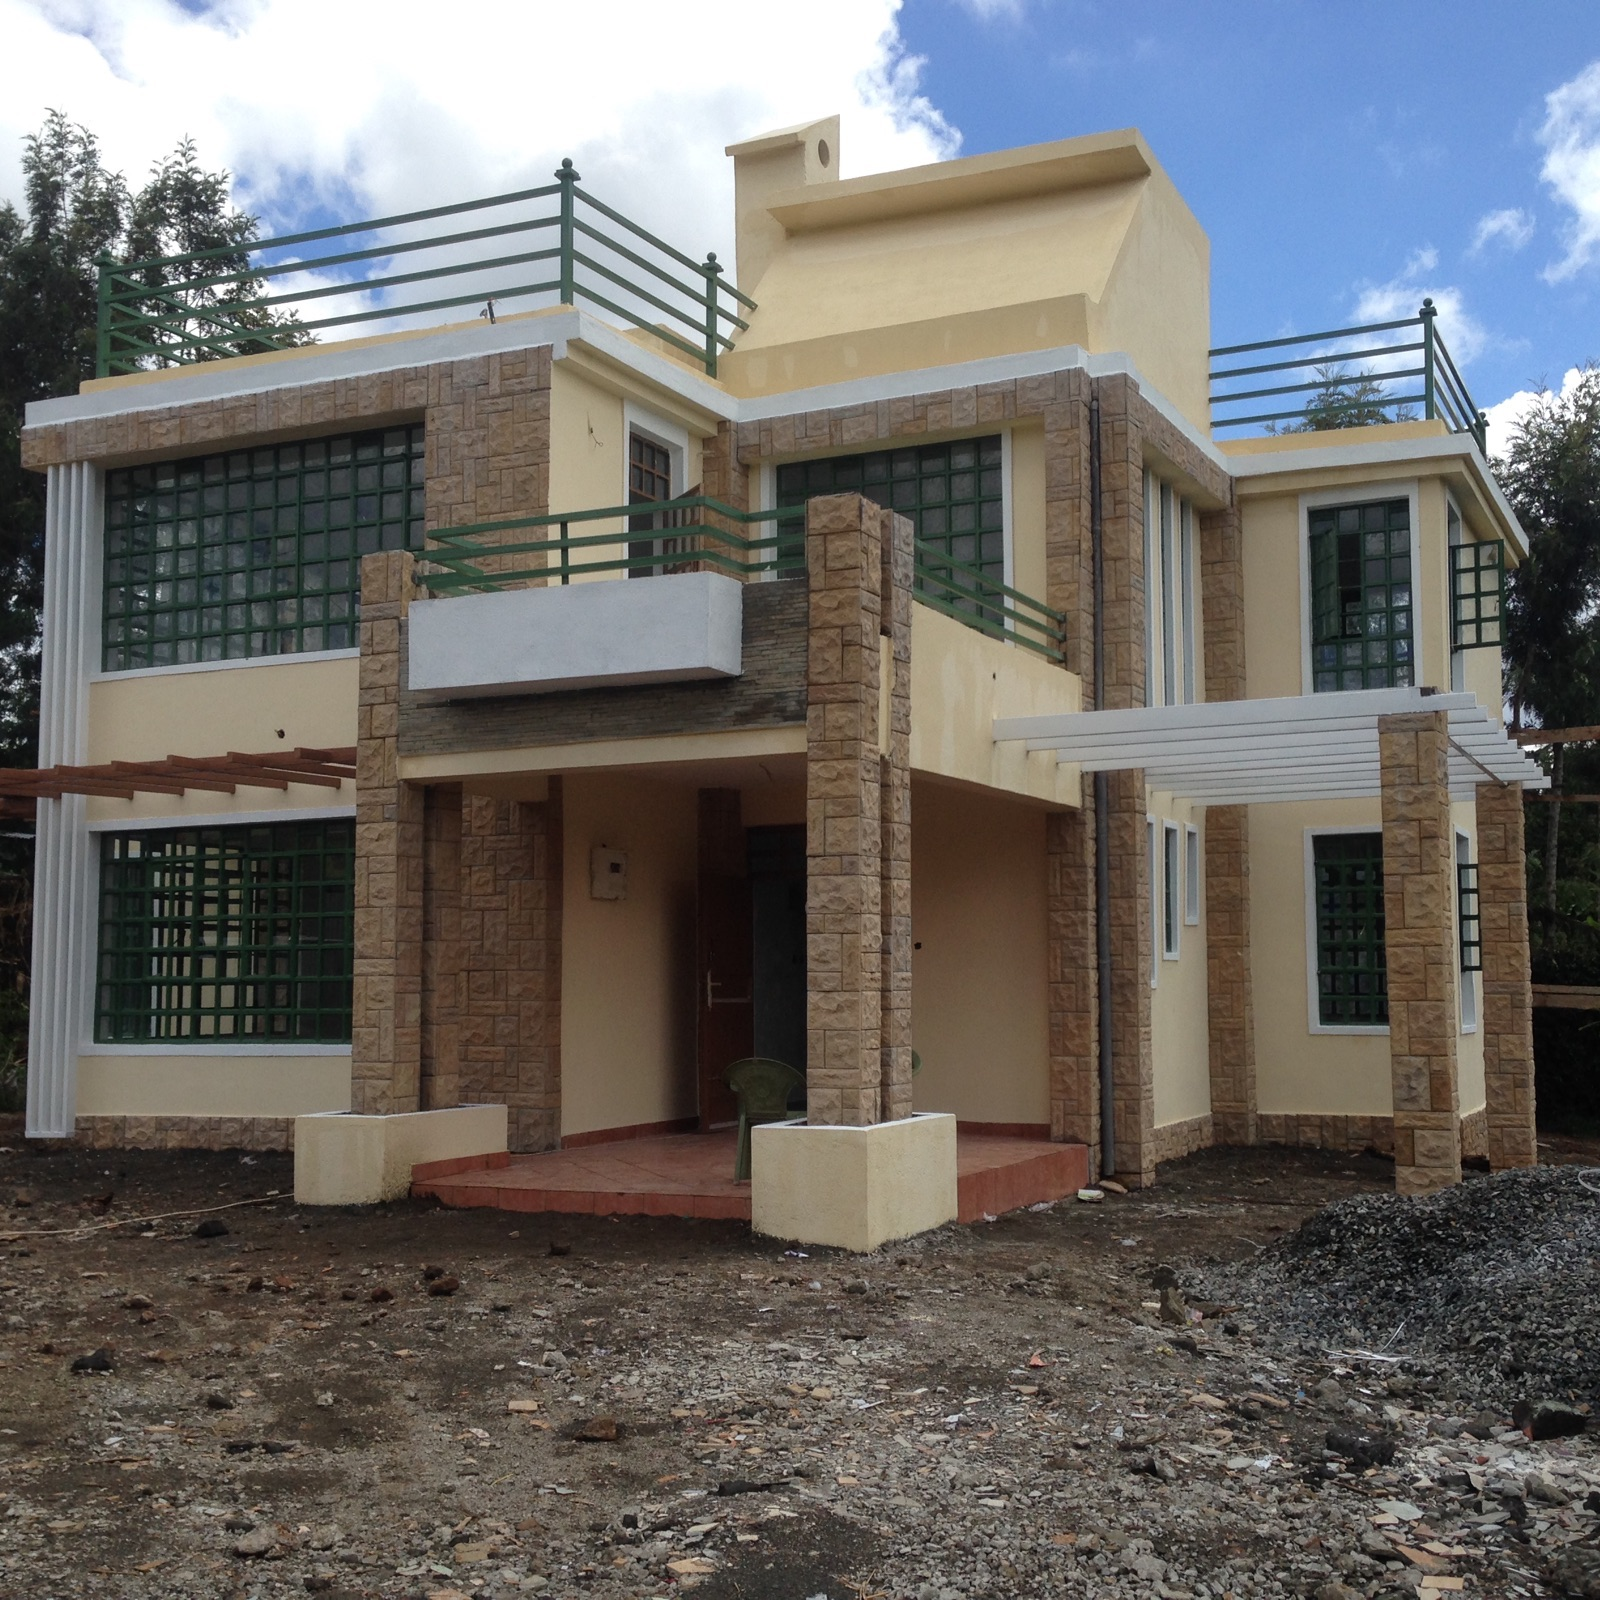 The finished house conte 4 bedroom house plan adroit for Modern house plans and designs in kenya